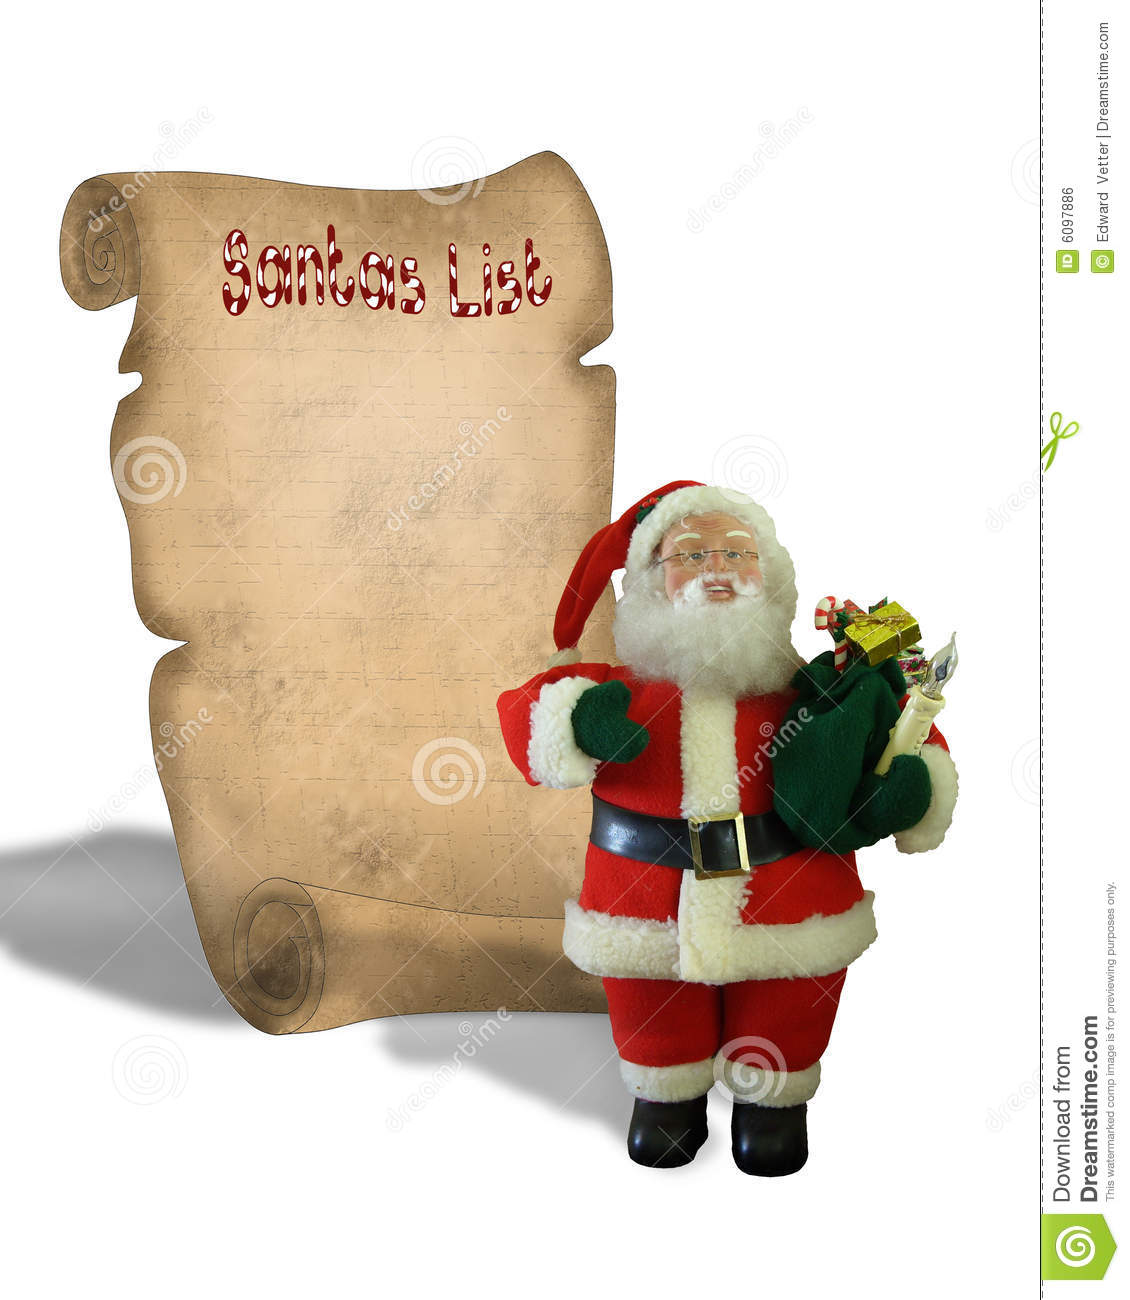 Santas List Template Scroll | Search Results | Calendar 2015